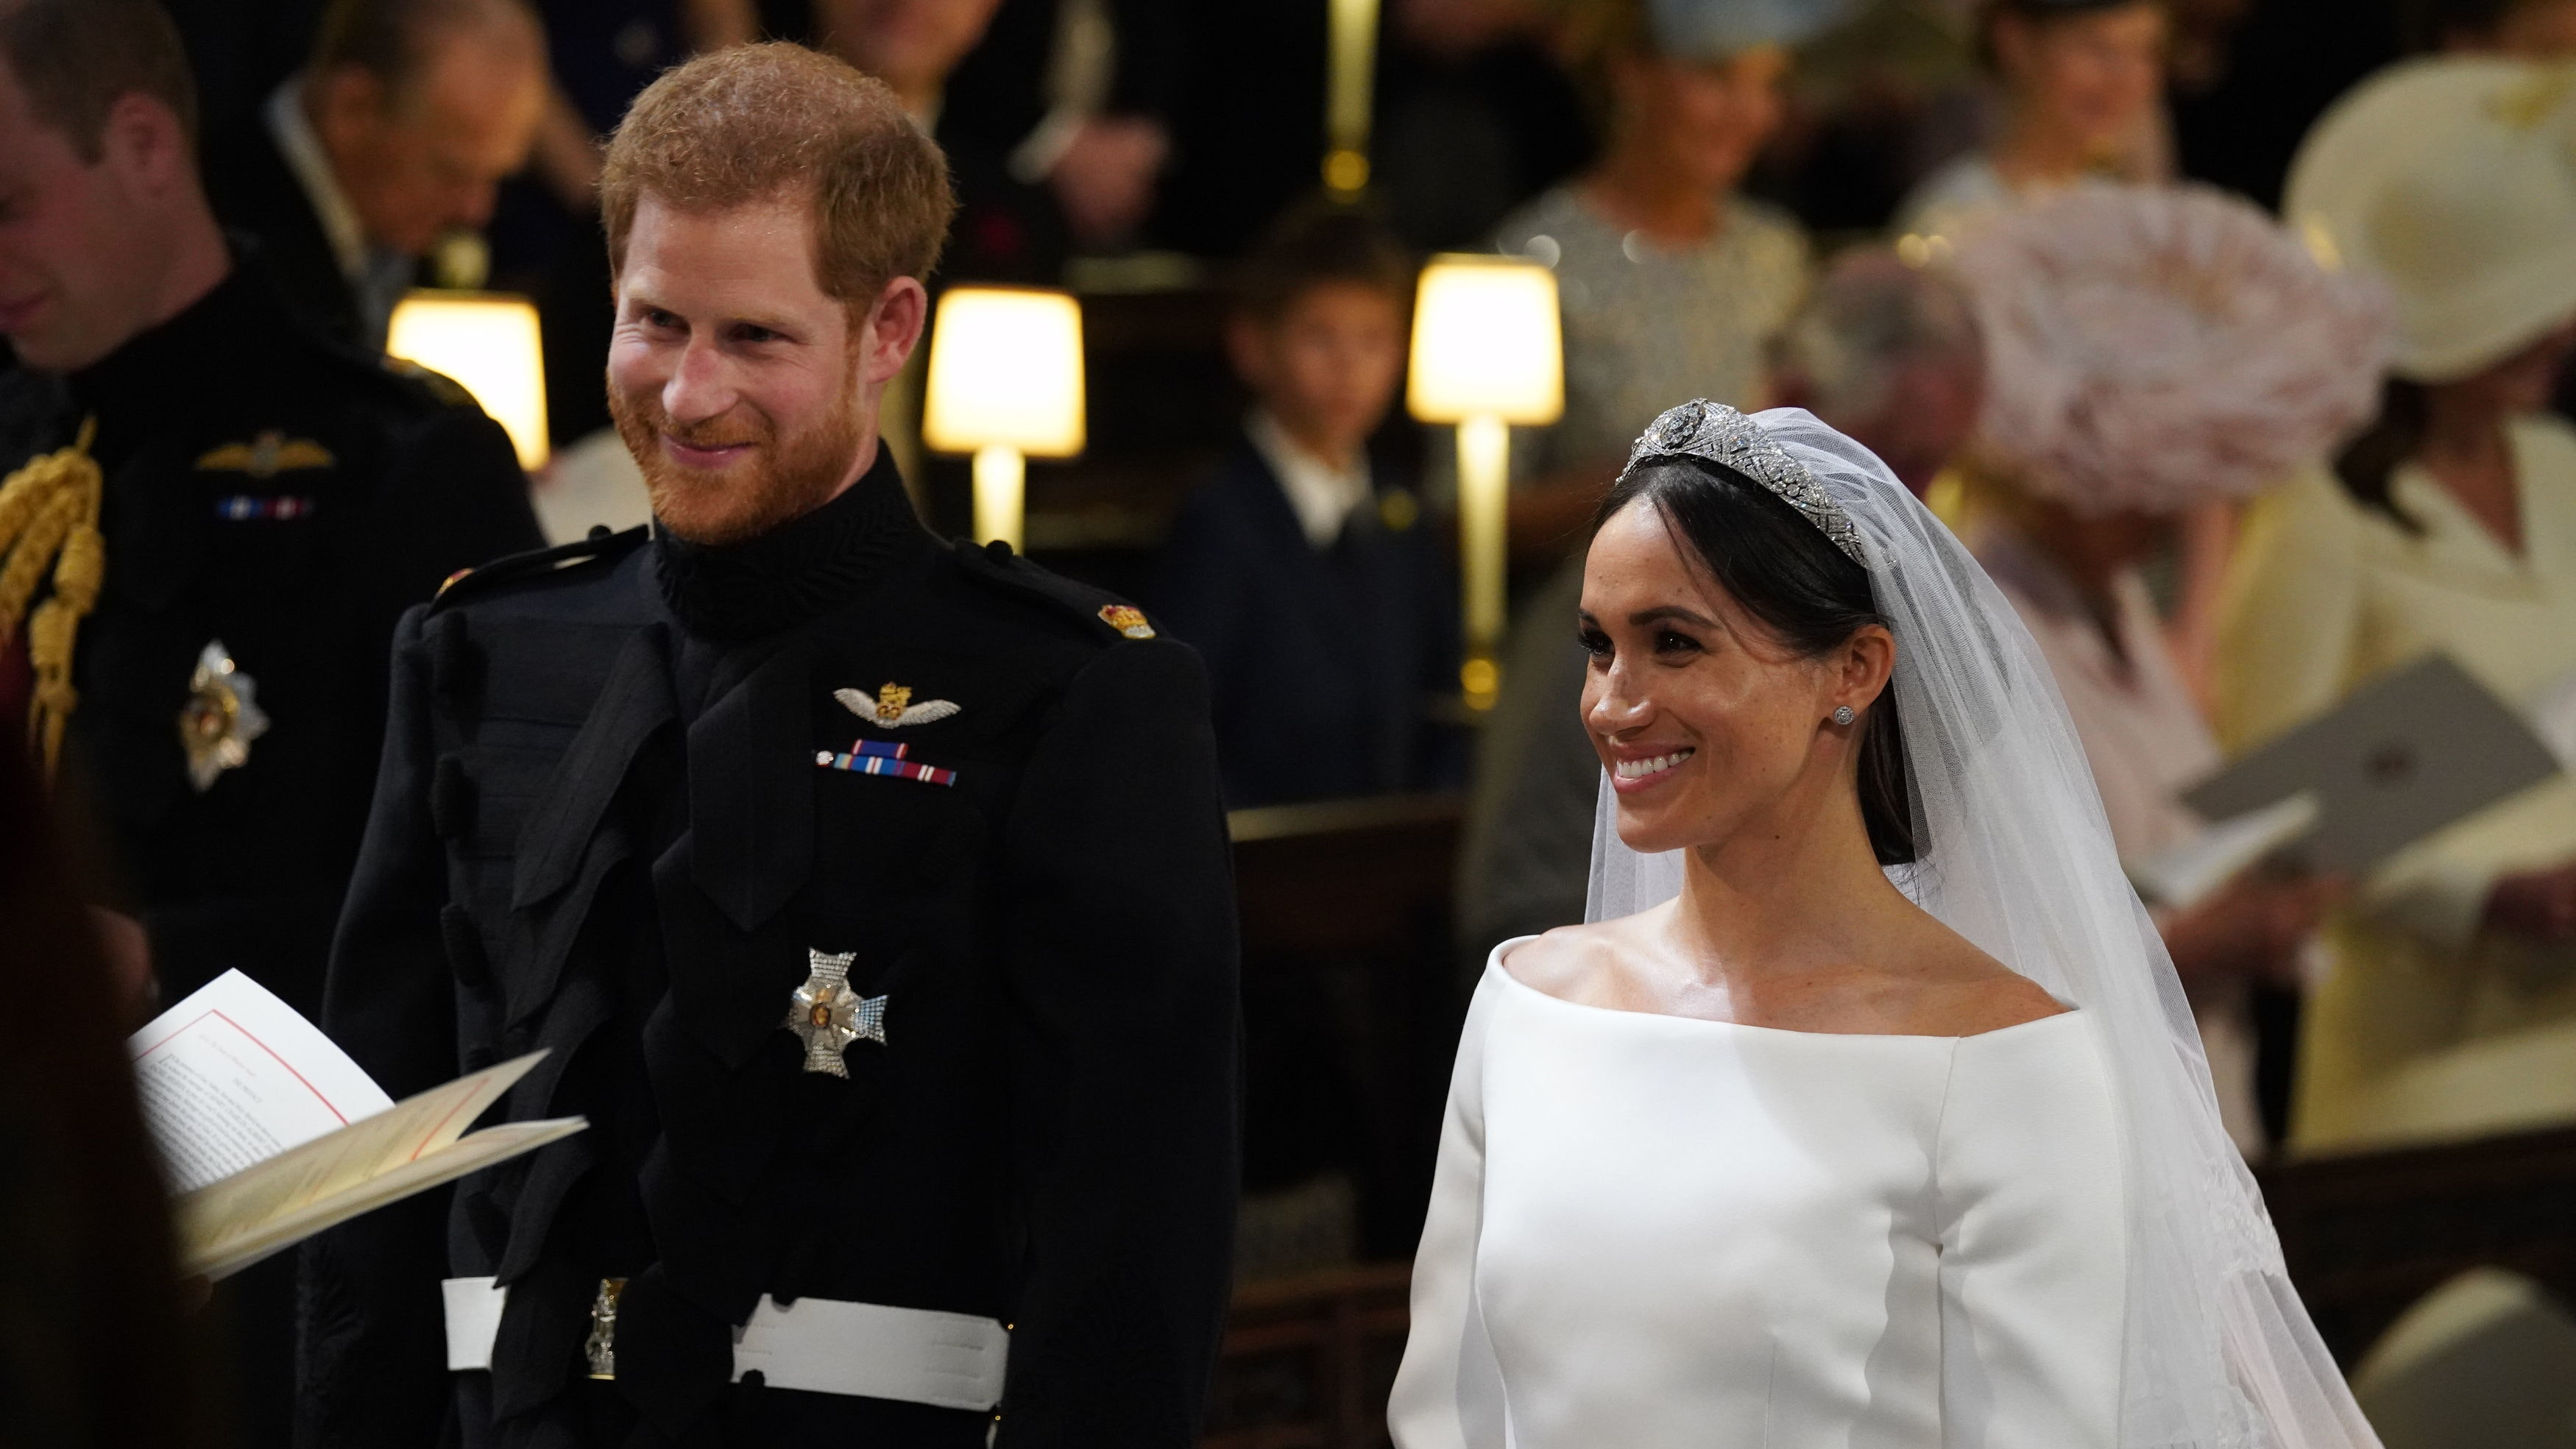 Harry and Meghan during the wedding